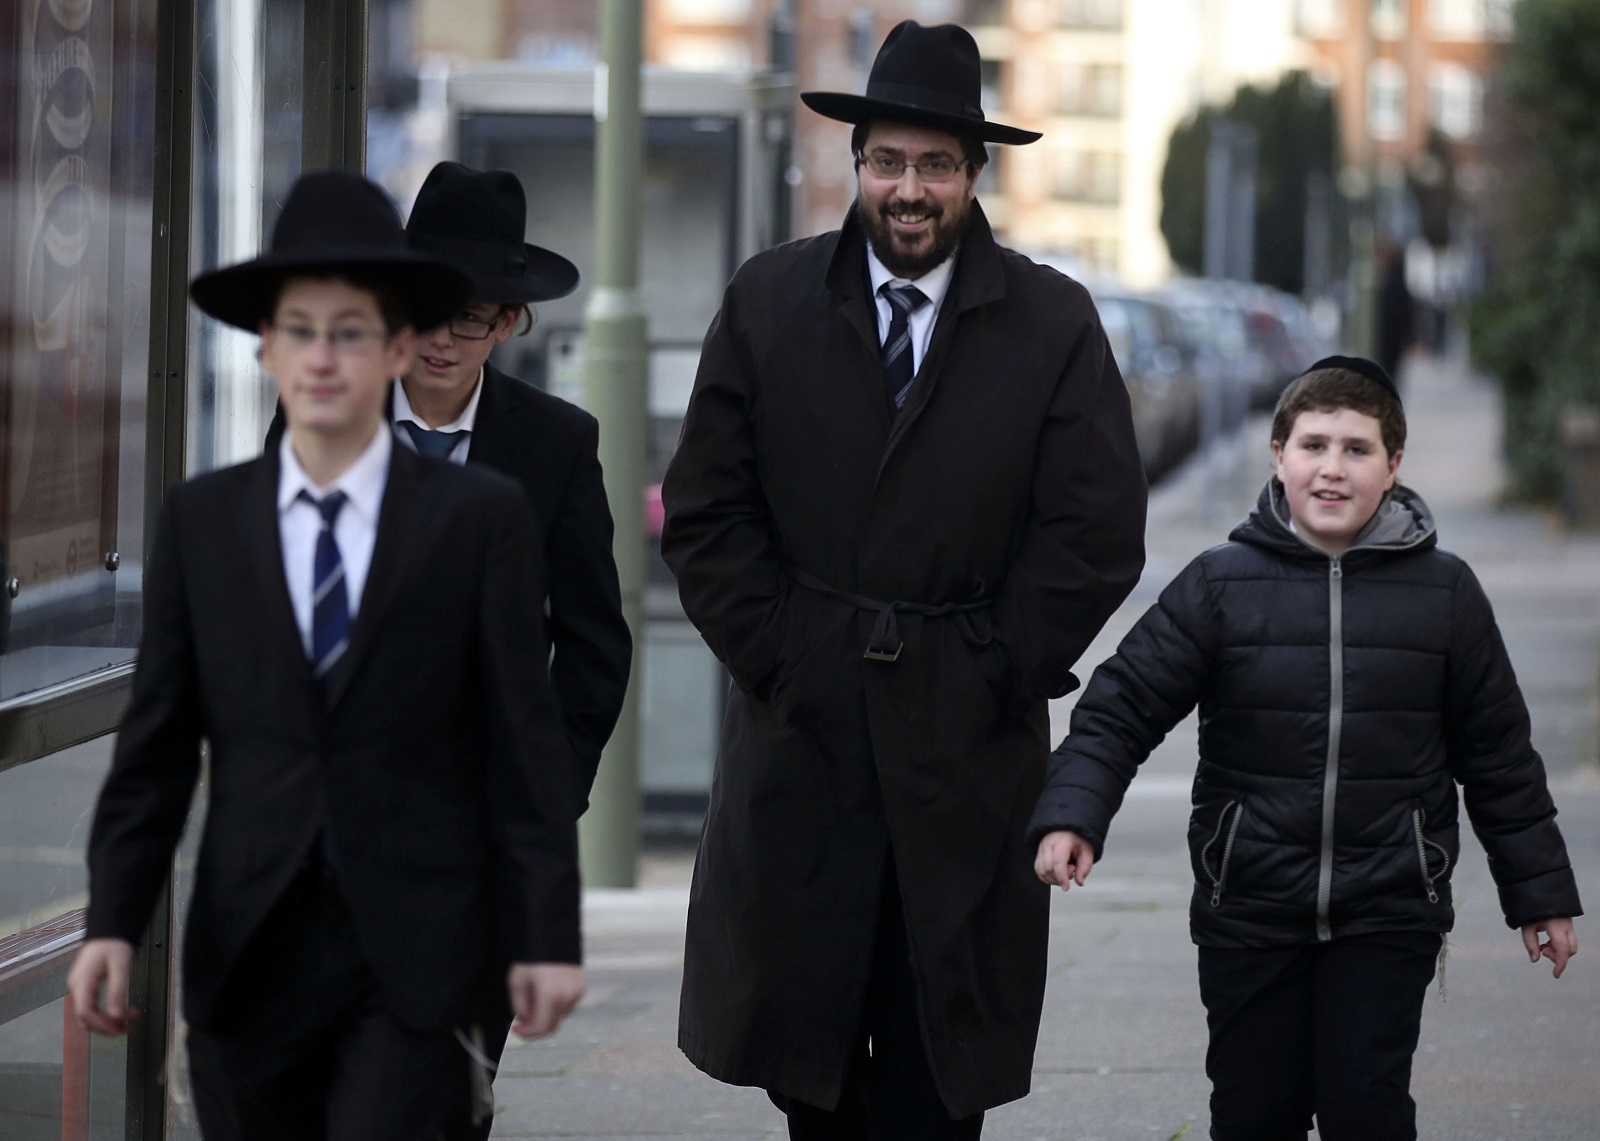 Jews in Golders Greeen face threat